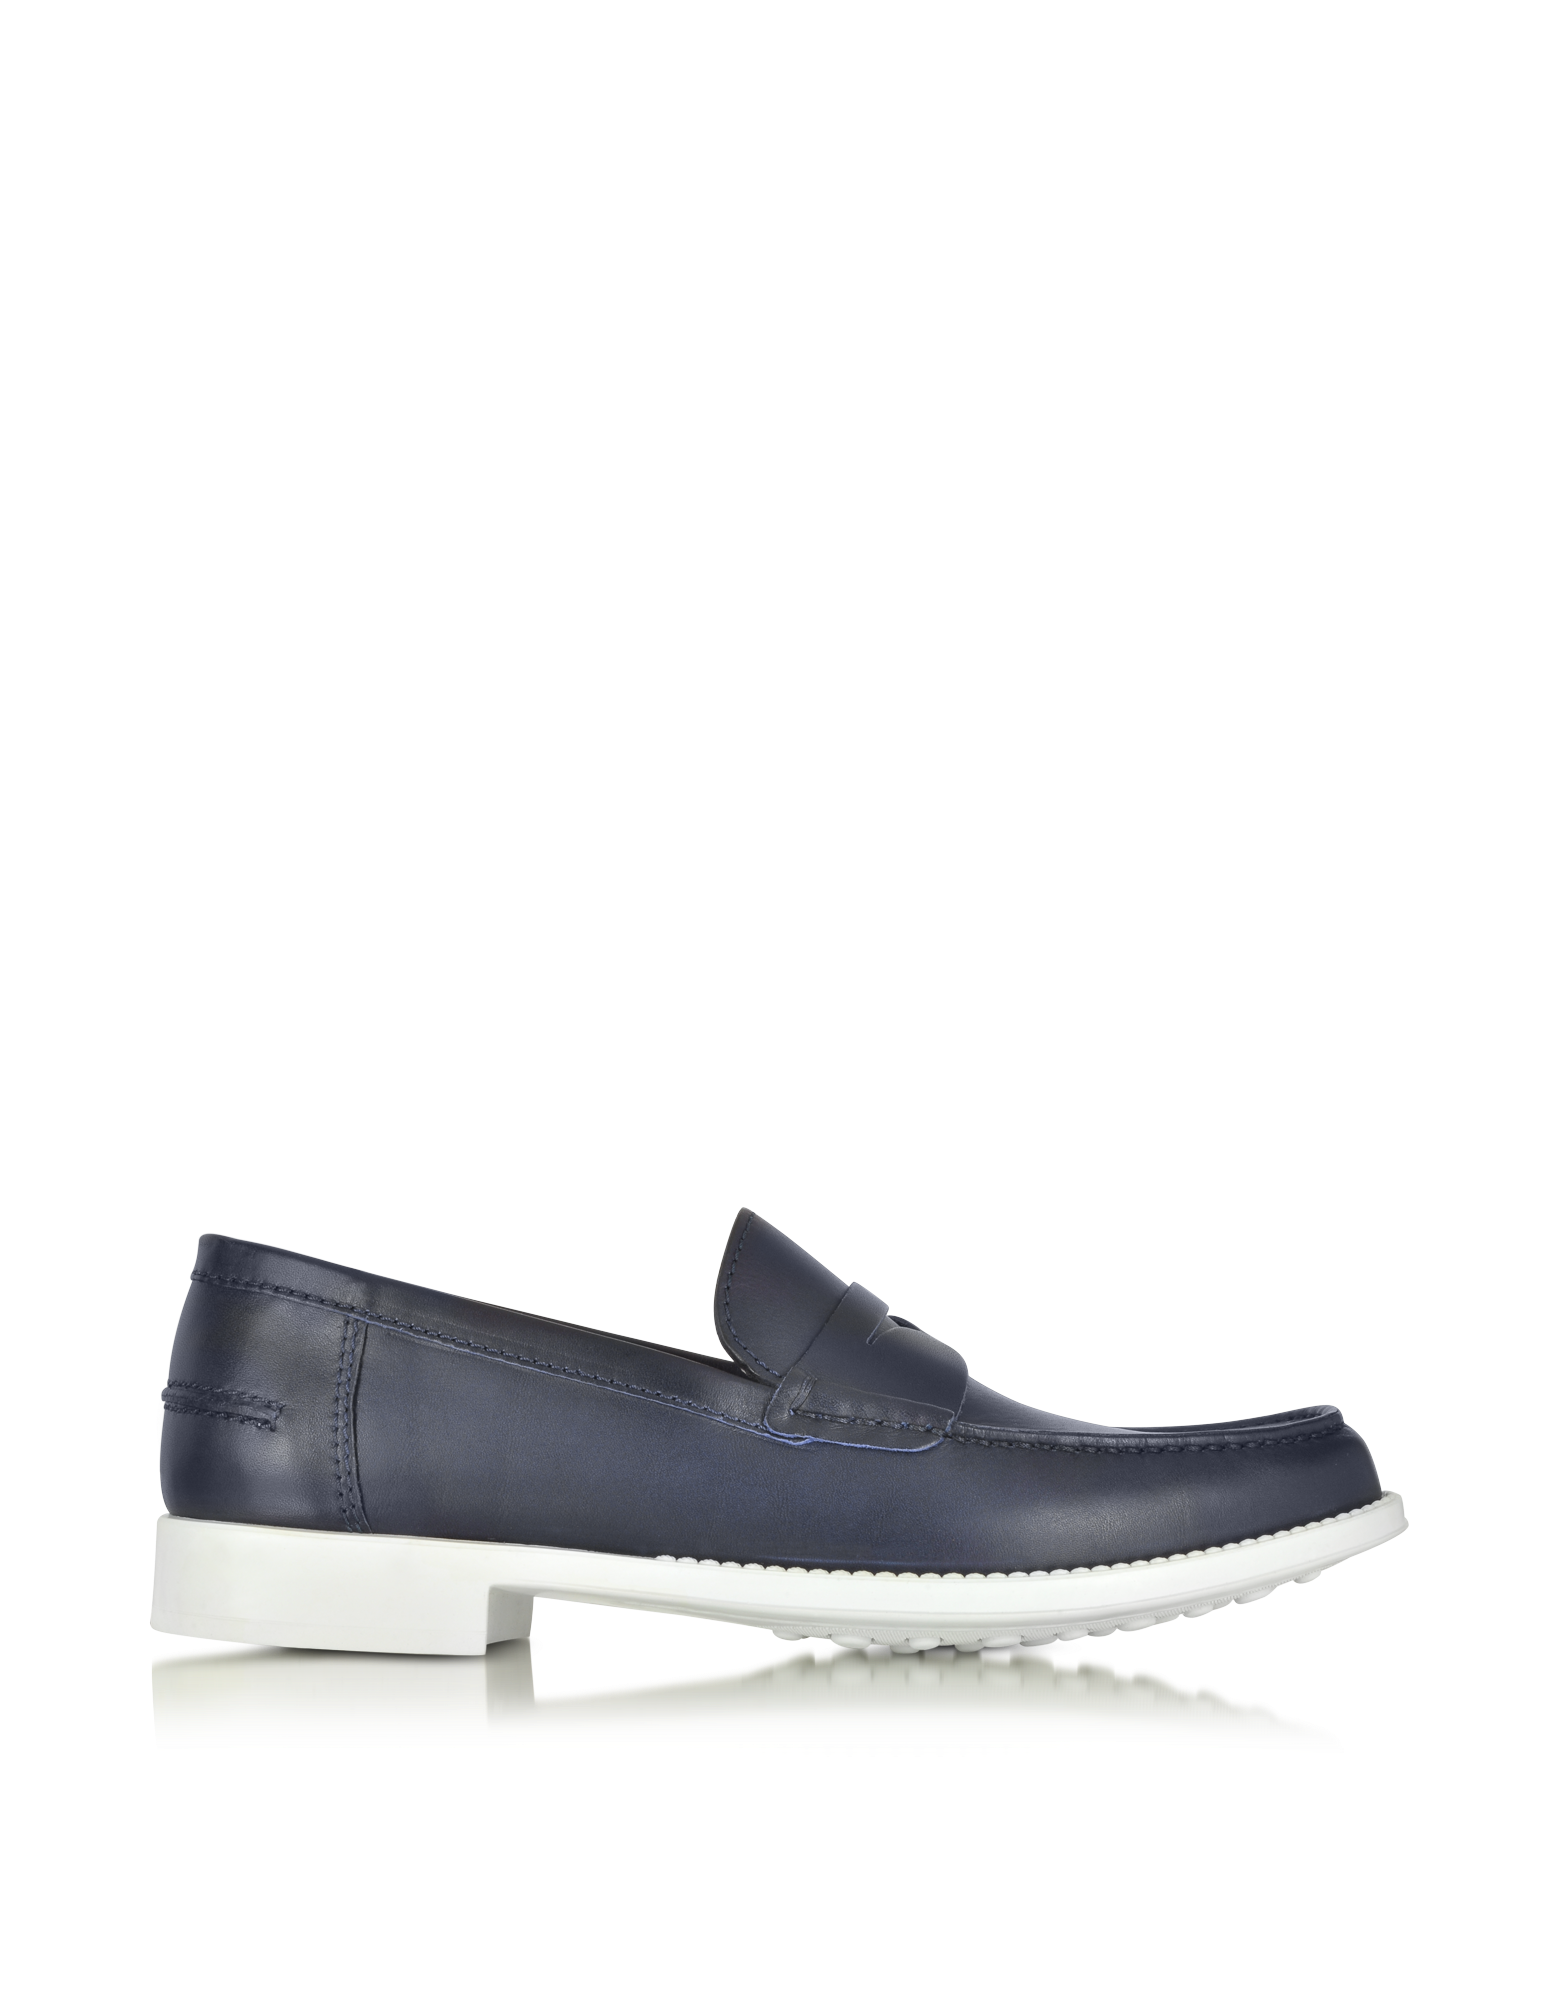 Image of Navy Leather Moccasin Shoe